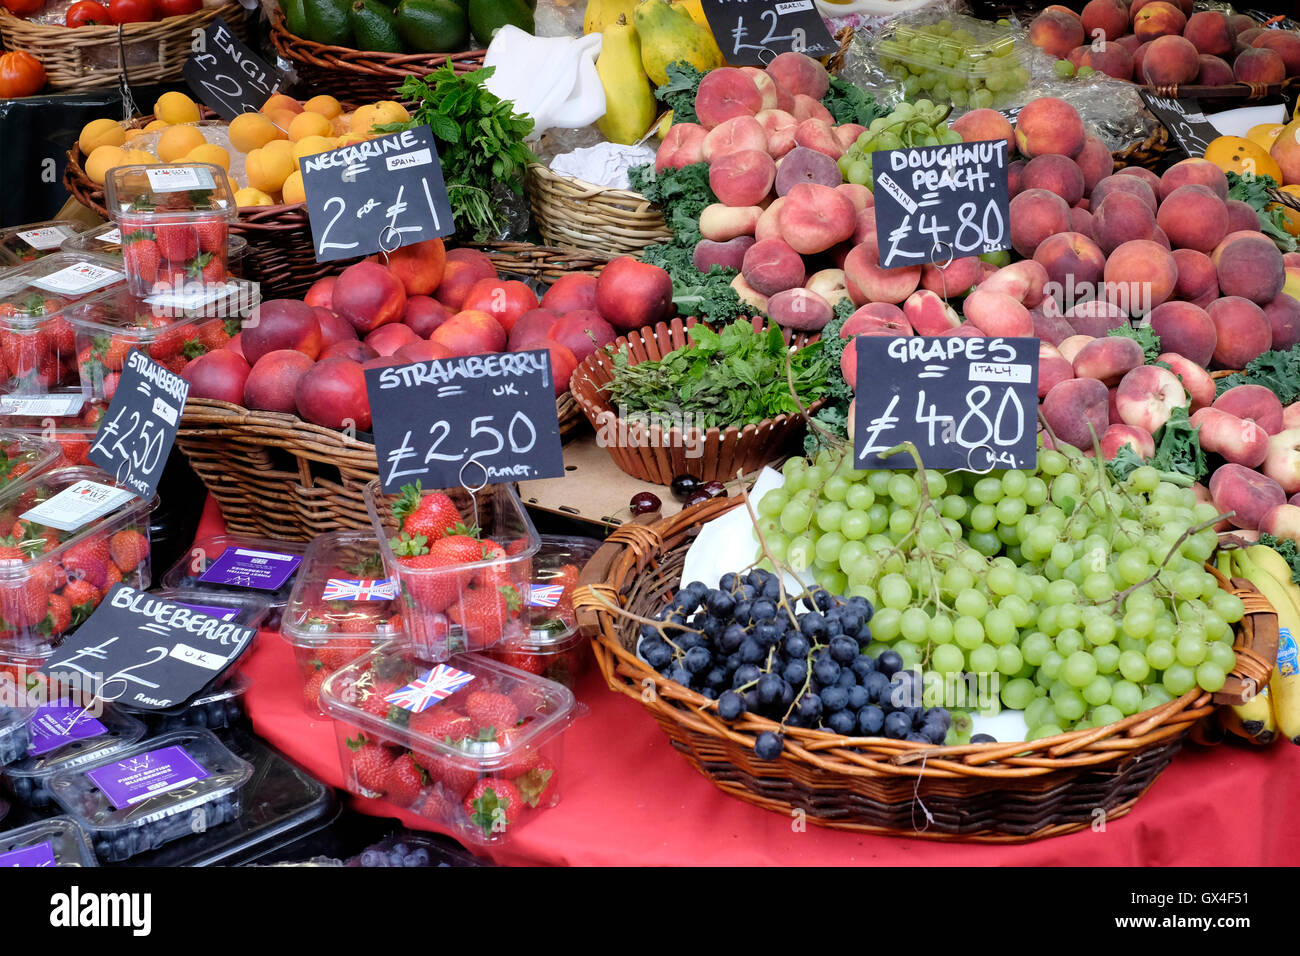 fruit and veg basket stockfotos fruit and veg basket bilder alamy. Black Bedroom Furniture Sets. Home Design Ideas